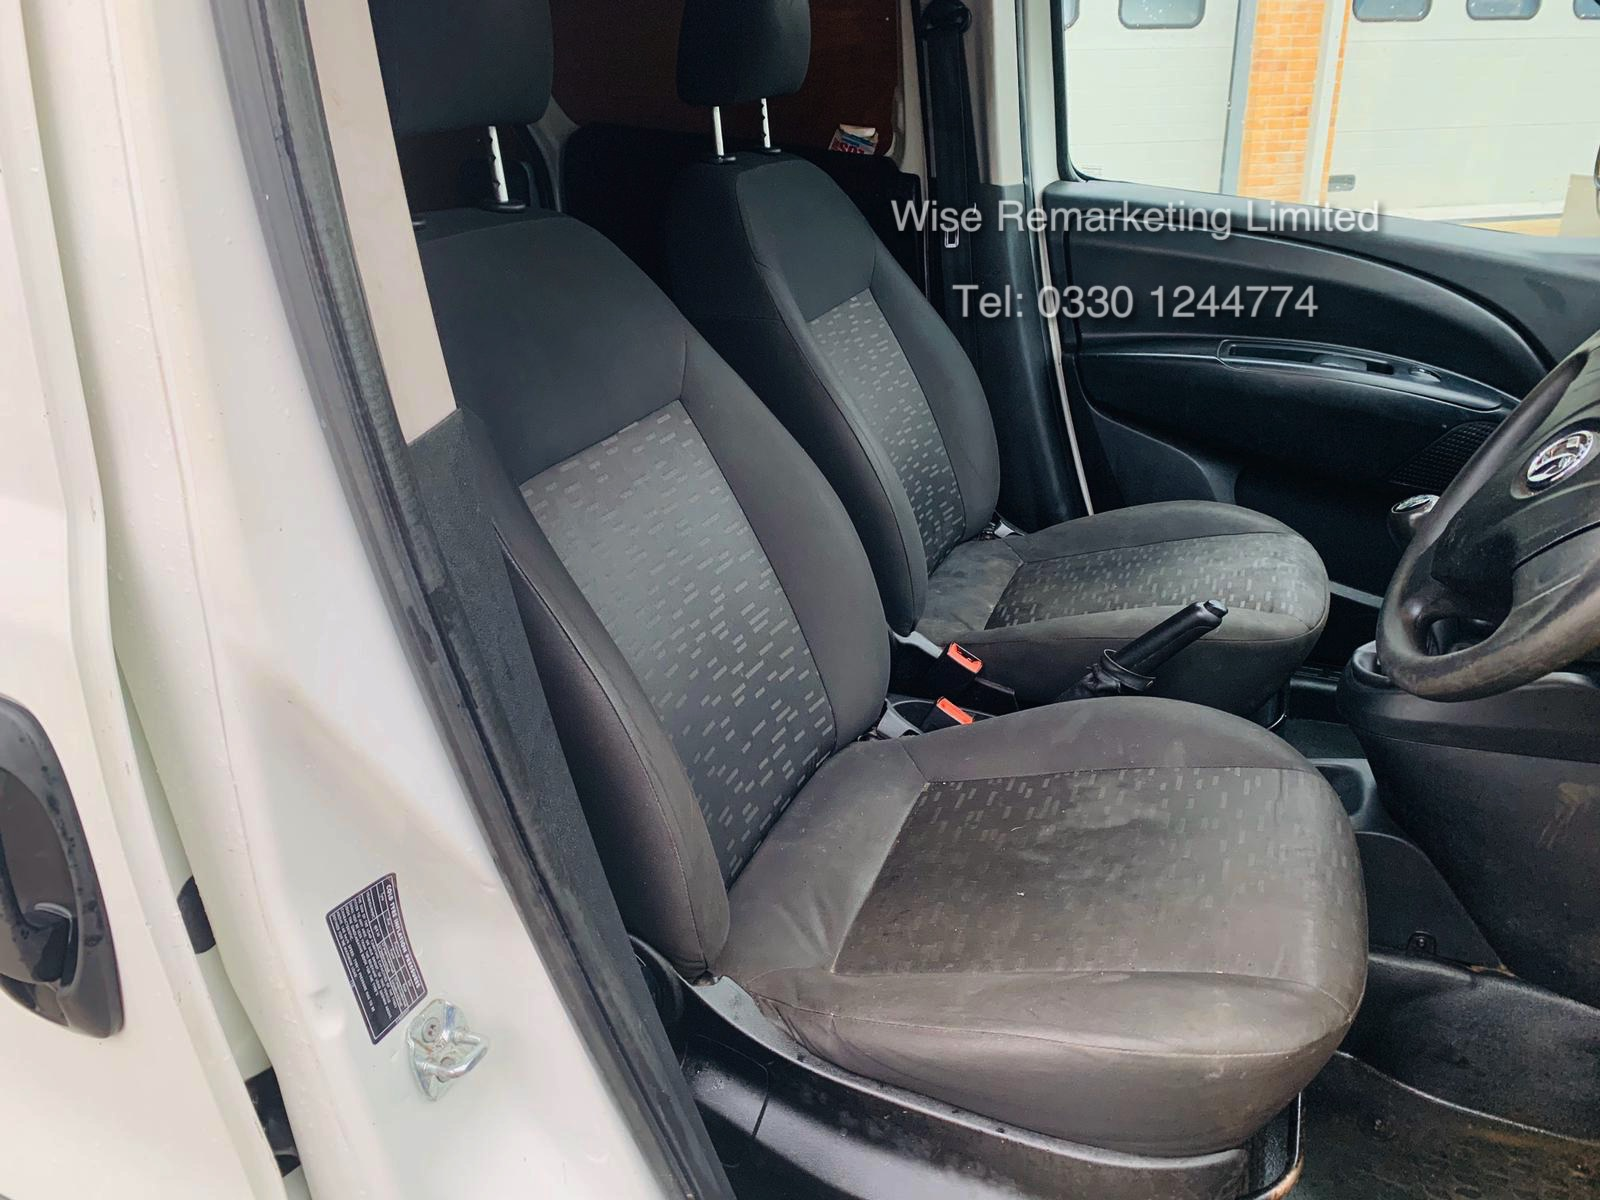 Vauxhall Combo 2300 1.6 CDTI Long - 2016 Model - 1 Keeper From New - Twin Doors - Ply Lined - Image 13 of 21